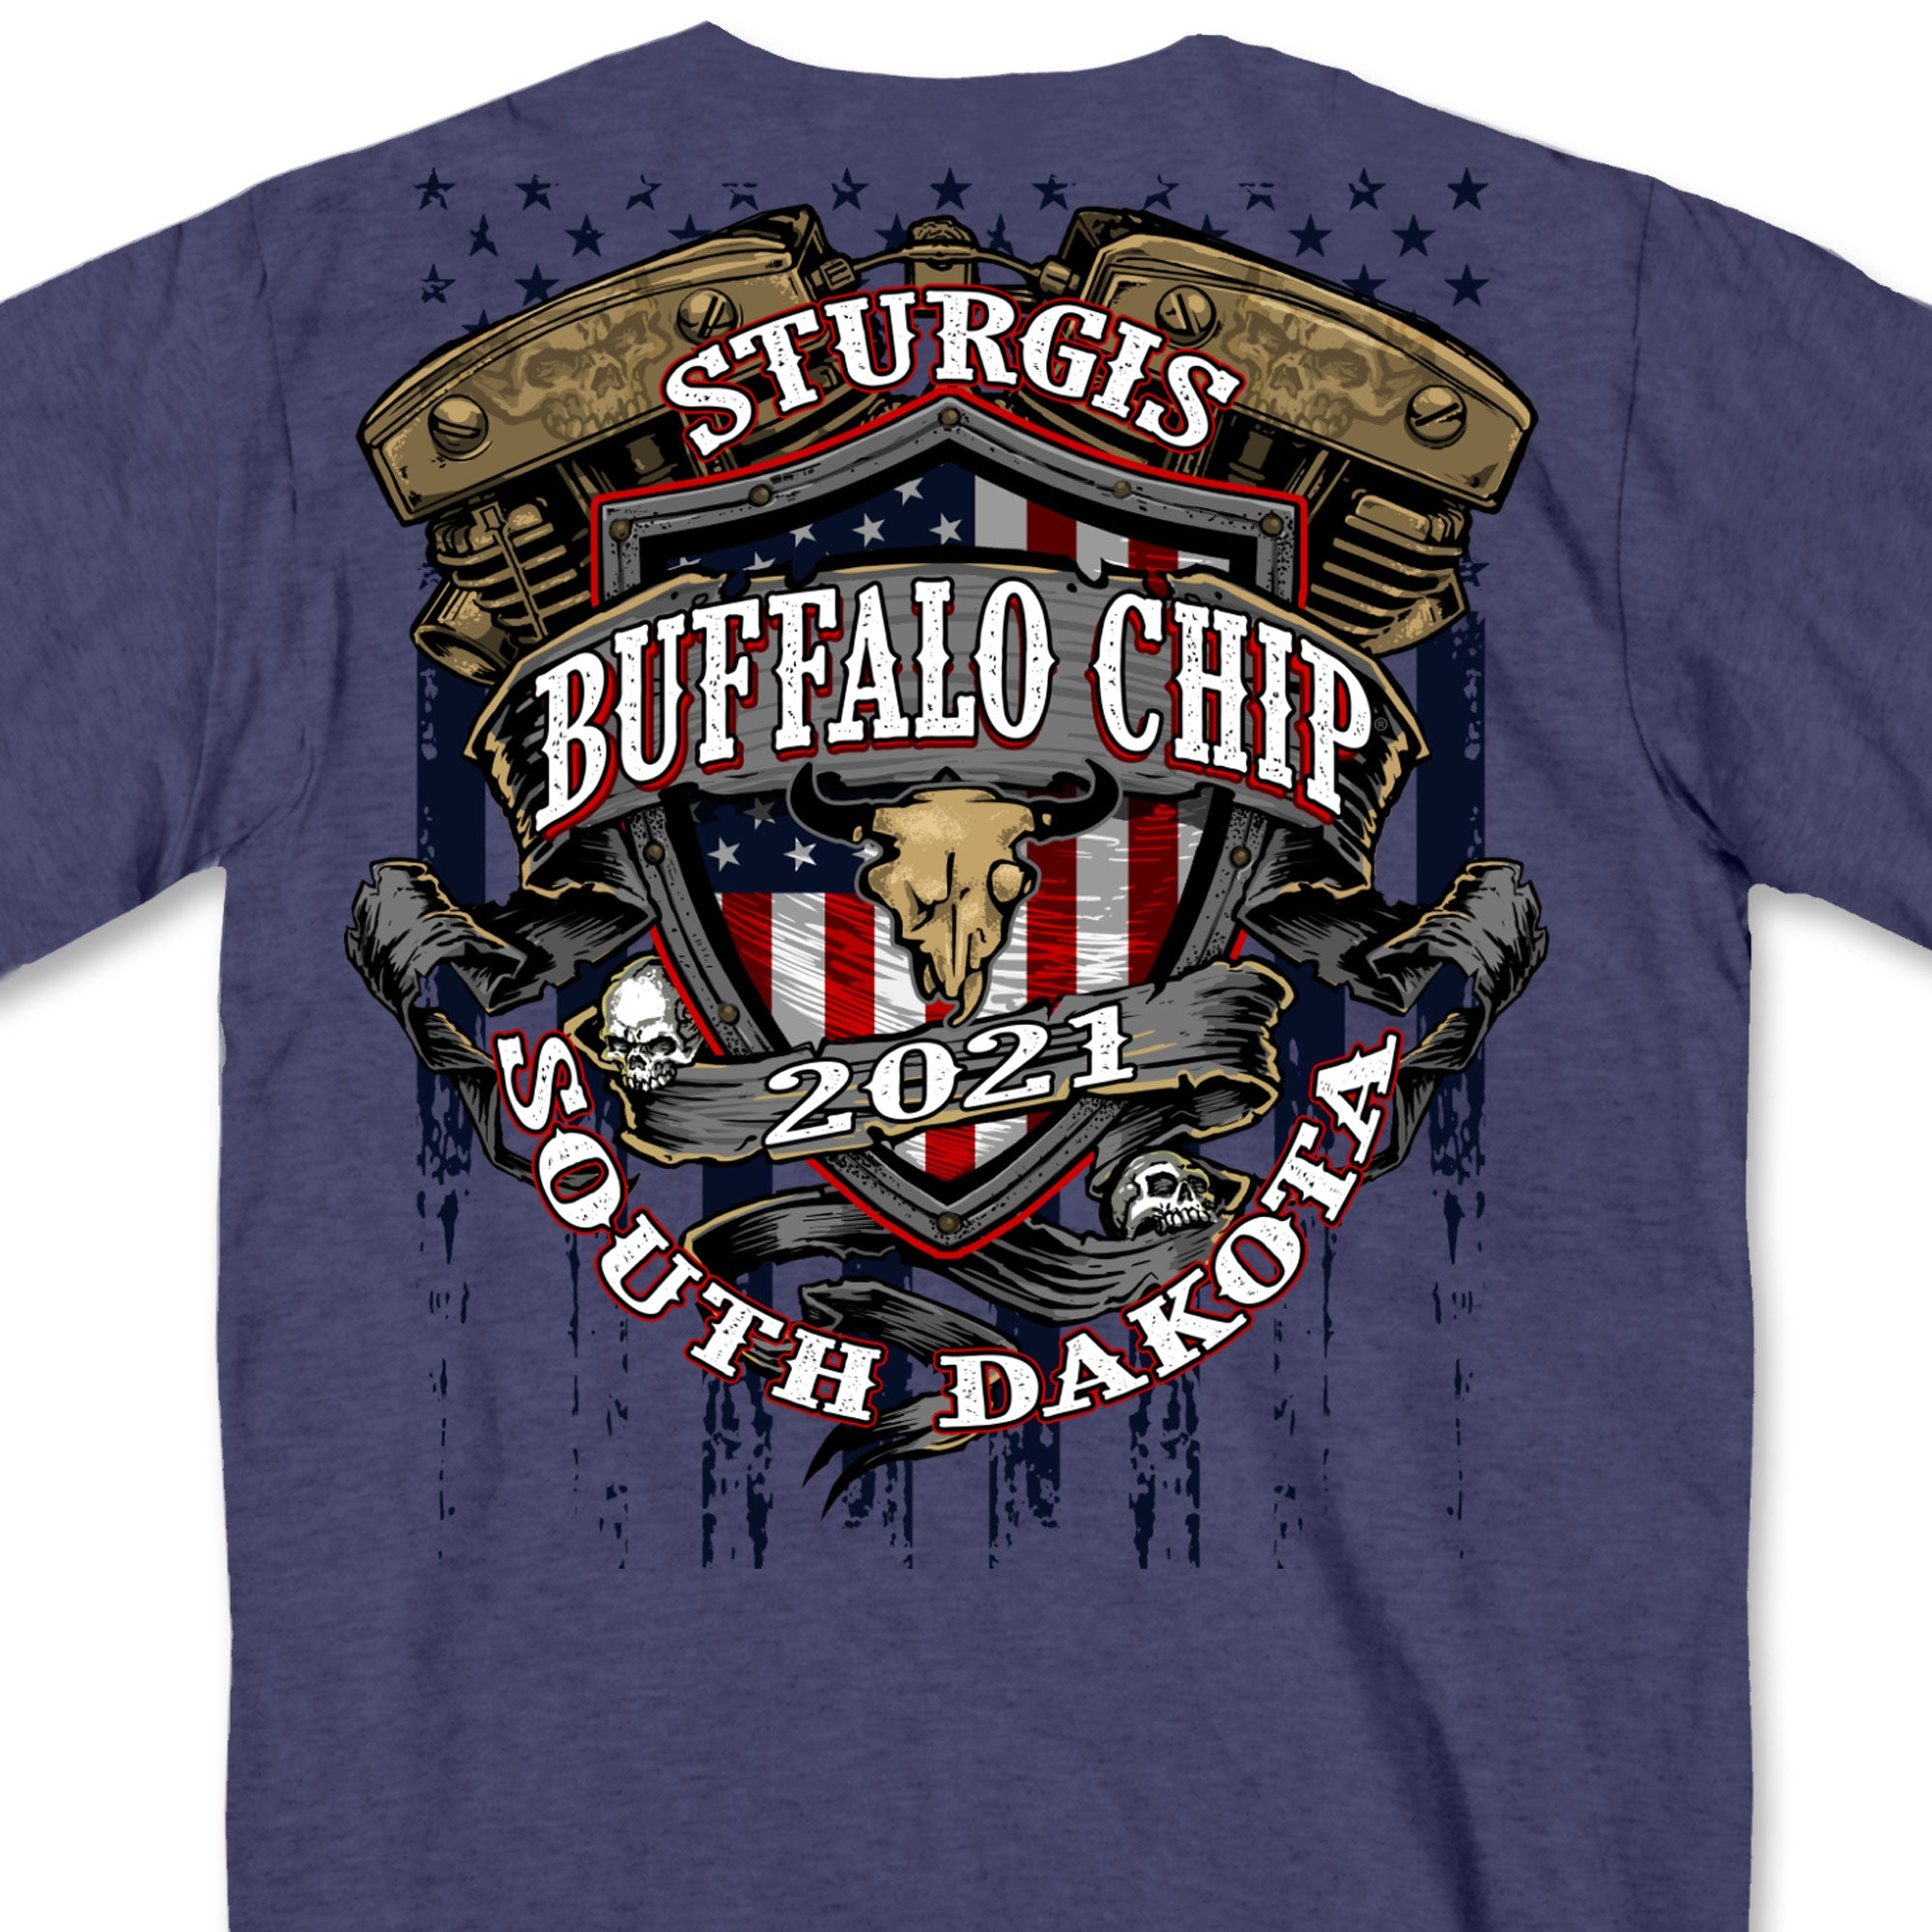 Sturgis 2021 Buffalo Chip Crest T-Shirt